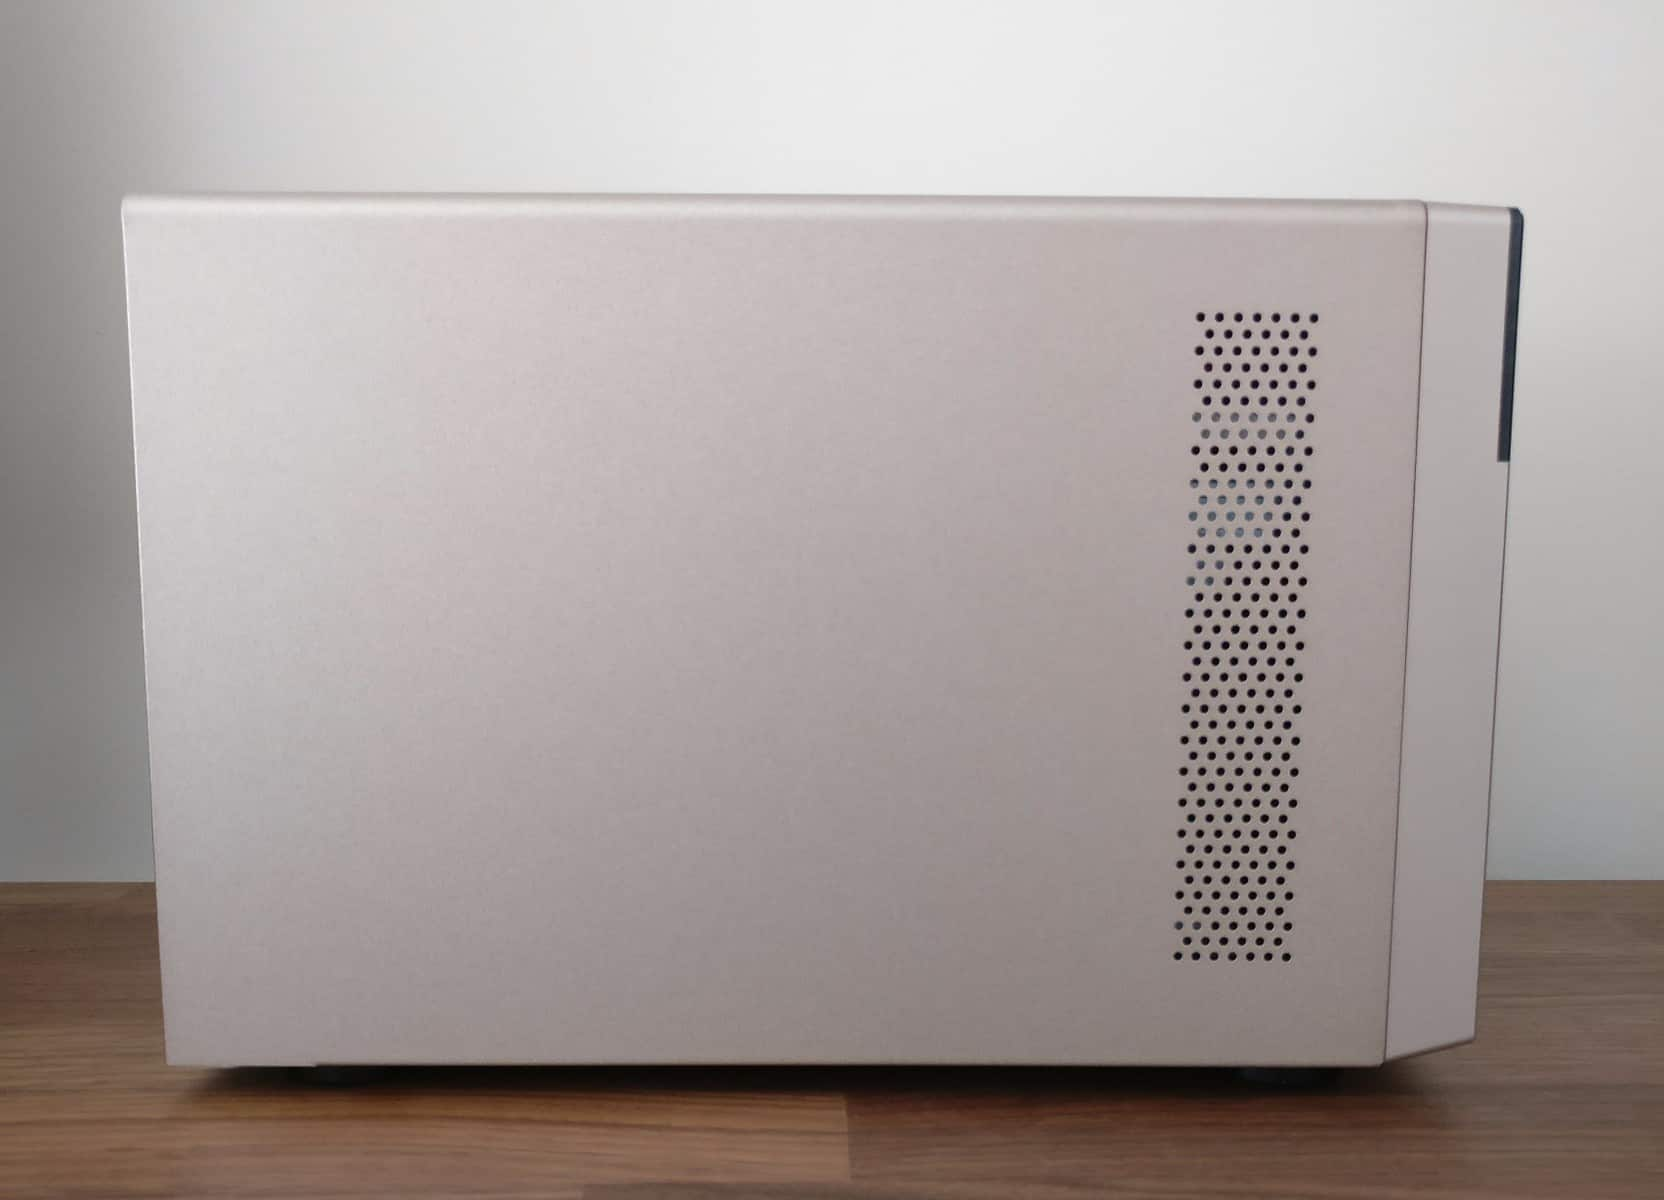 QNAP-TVS-473-Photos-27 QNAP TVS-473 4-Bay NAS Review